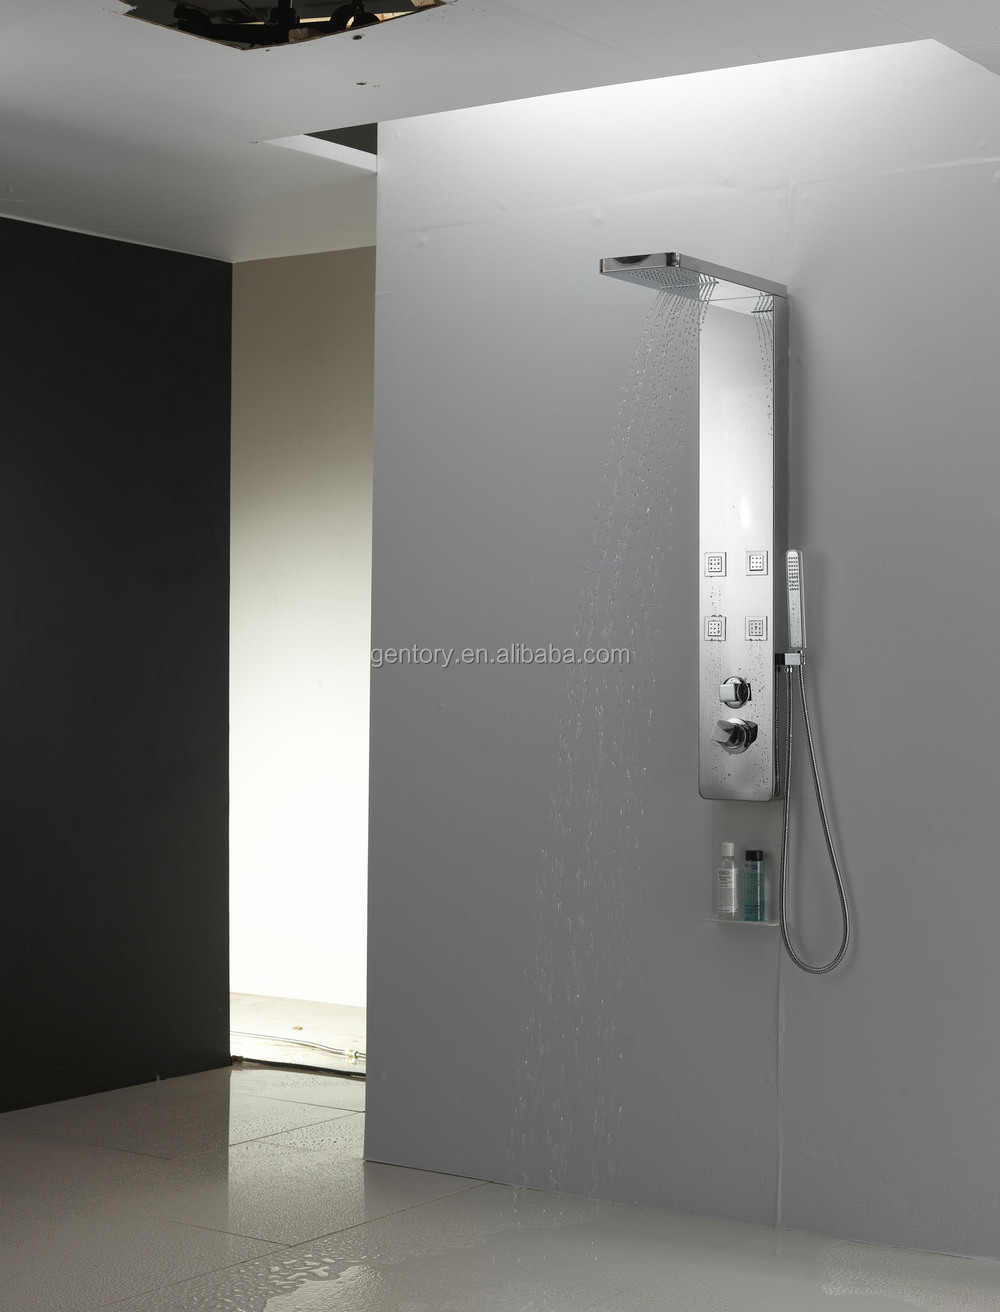 Autumn new design faucets bathroom product stainless steel for Bathroom design products